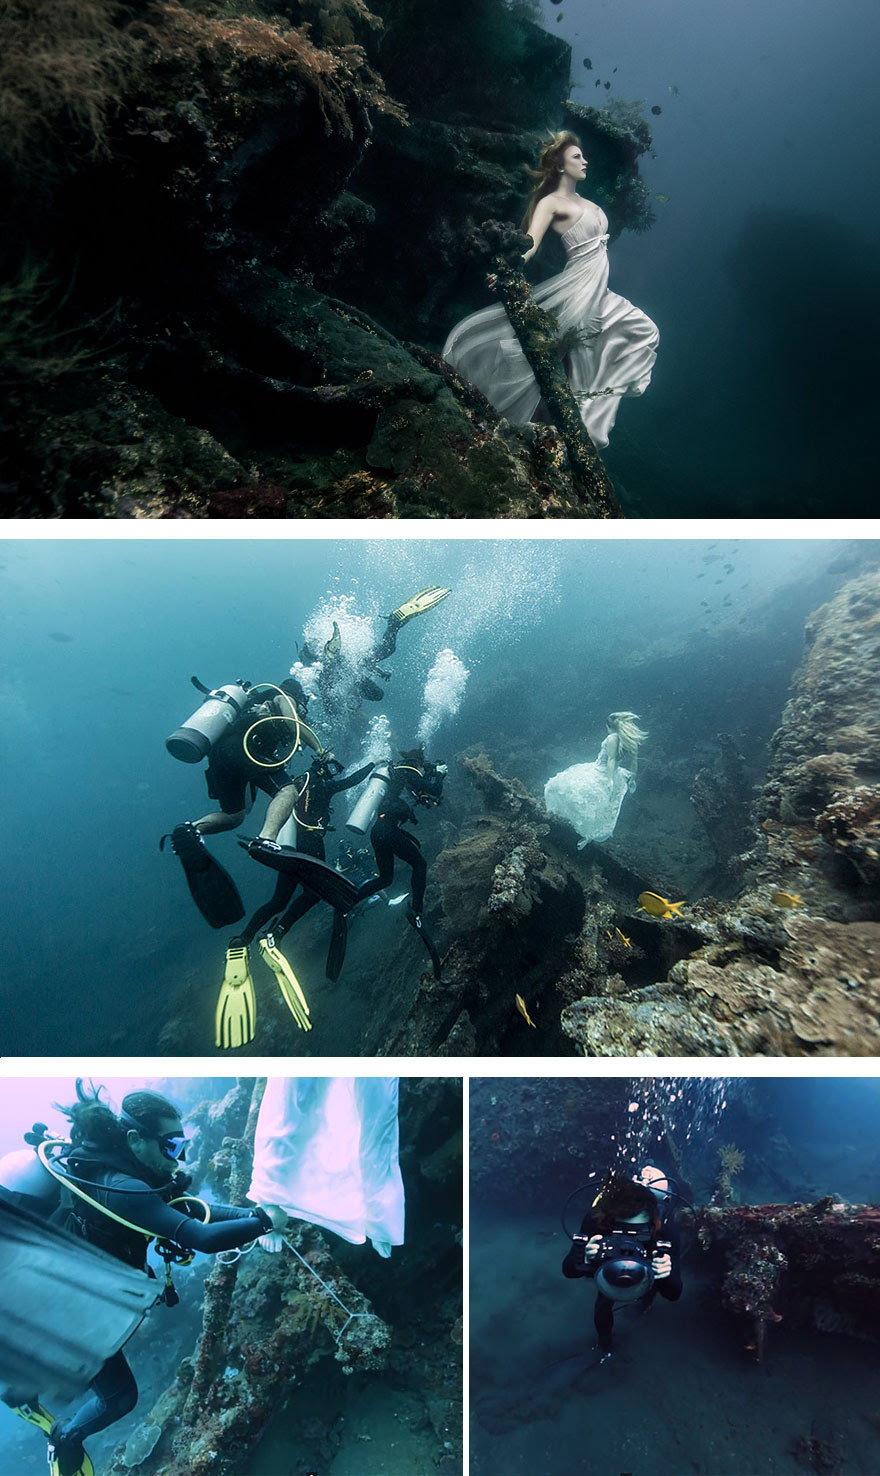 Photoshoot 25m Under The Sea In A Sunken Shipwreck